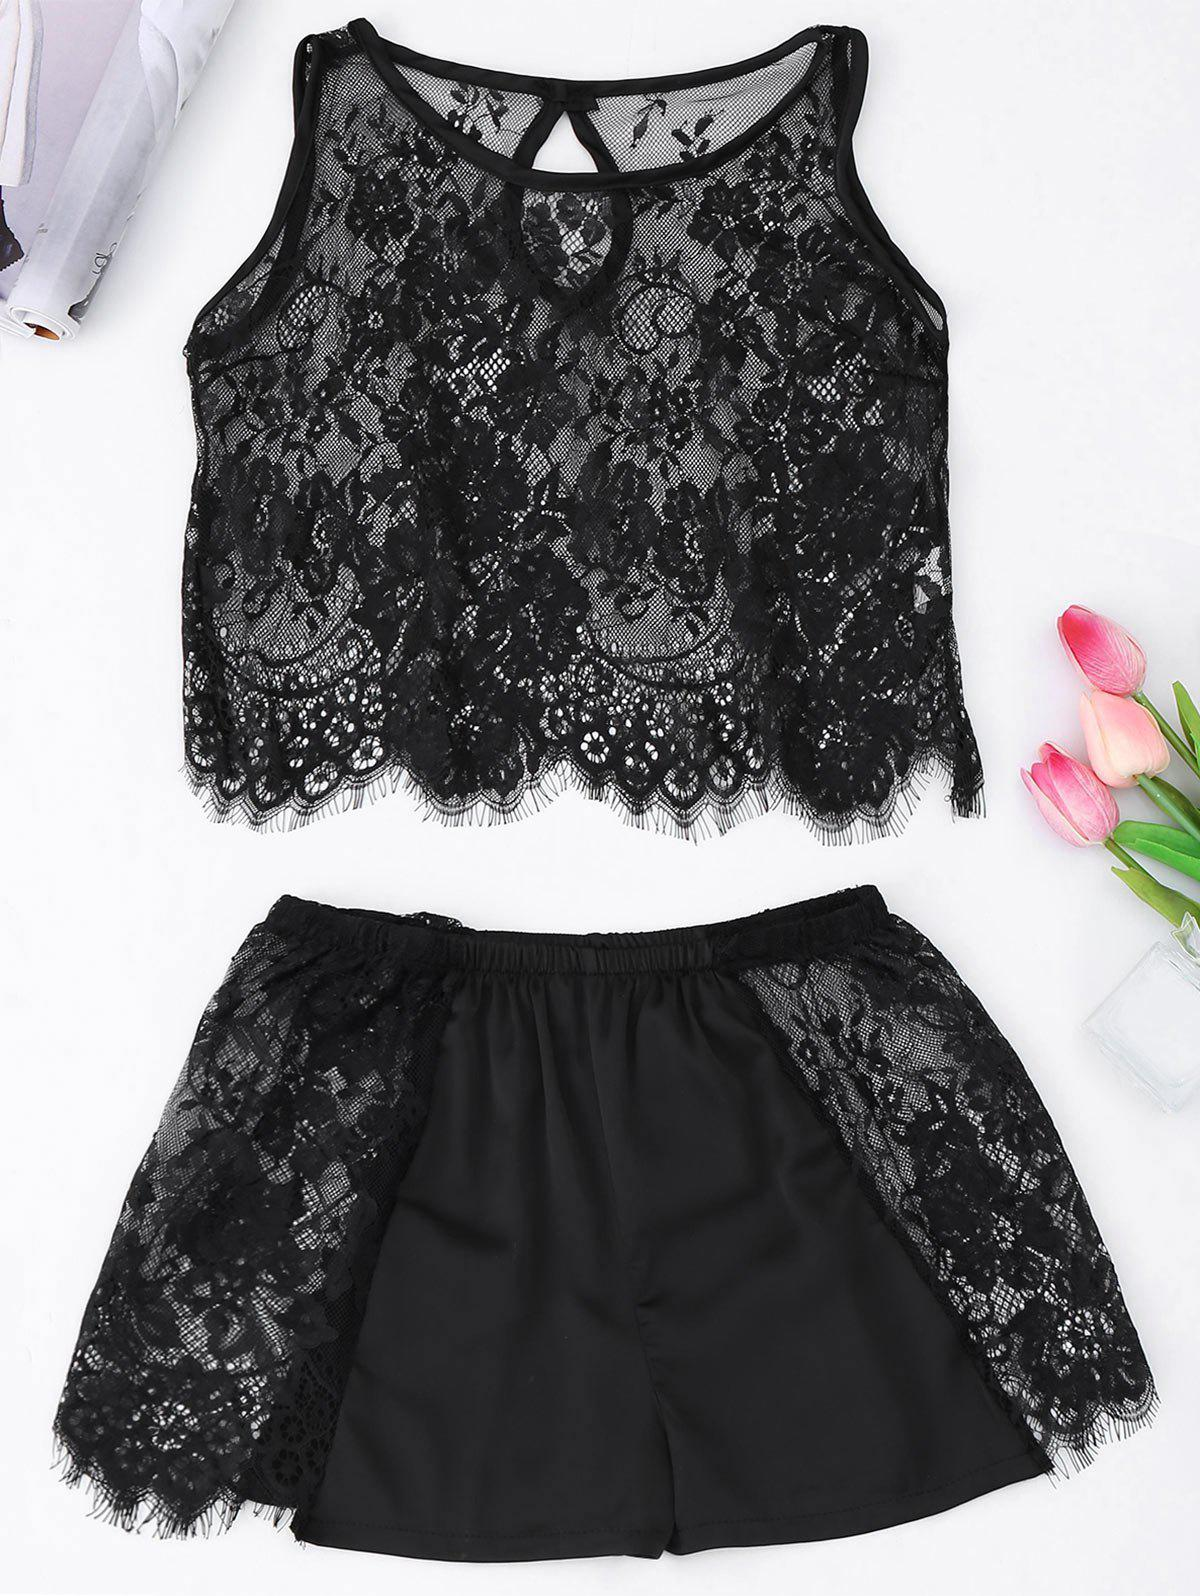 See Through Cropped Lace Tank Top with Shorts - BLACK ONE SIZE